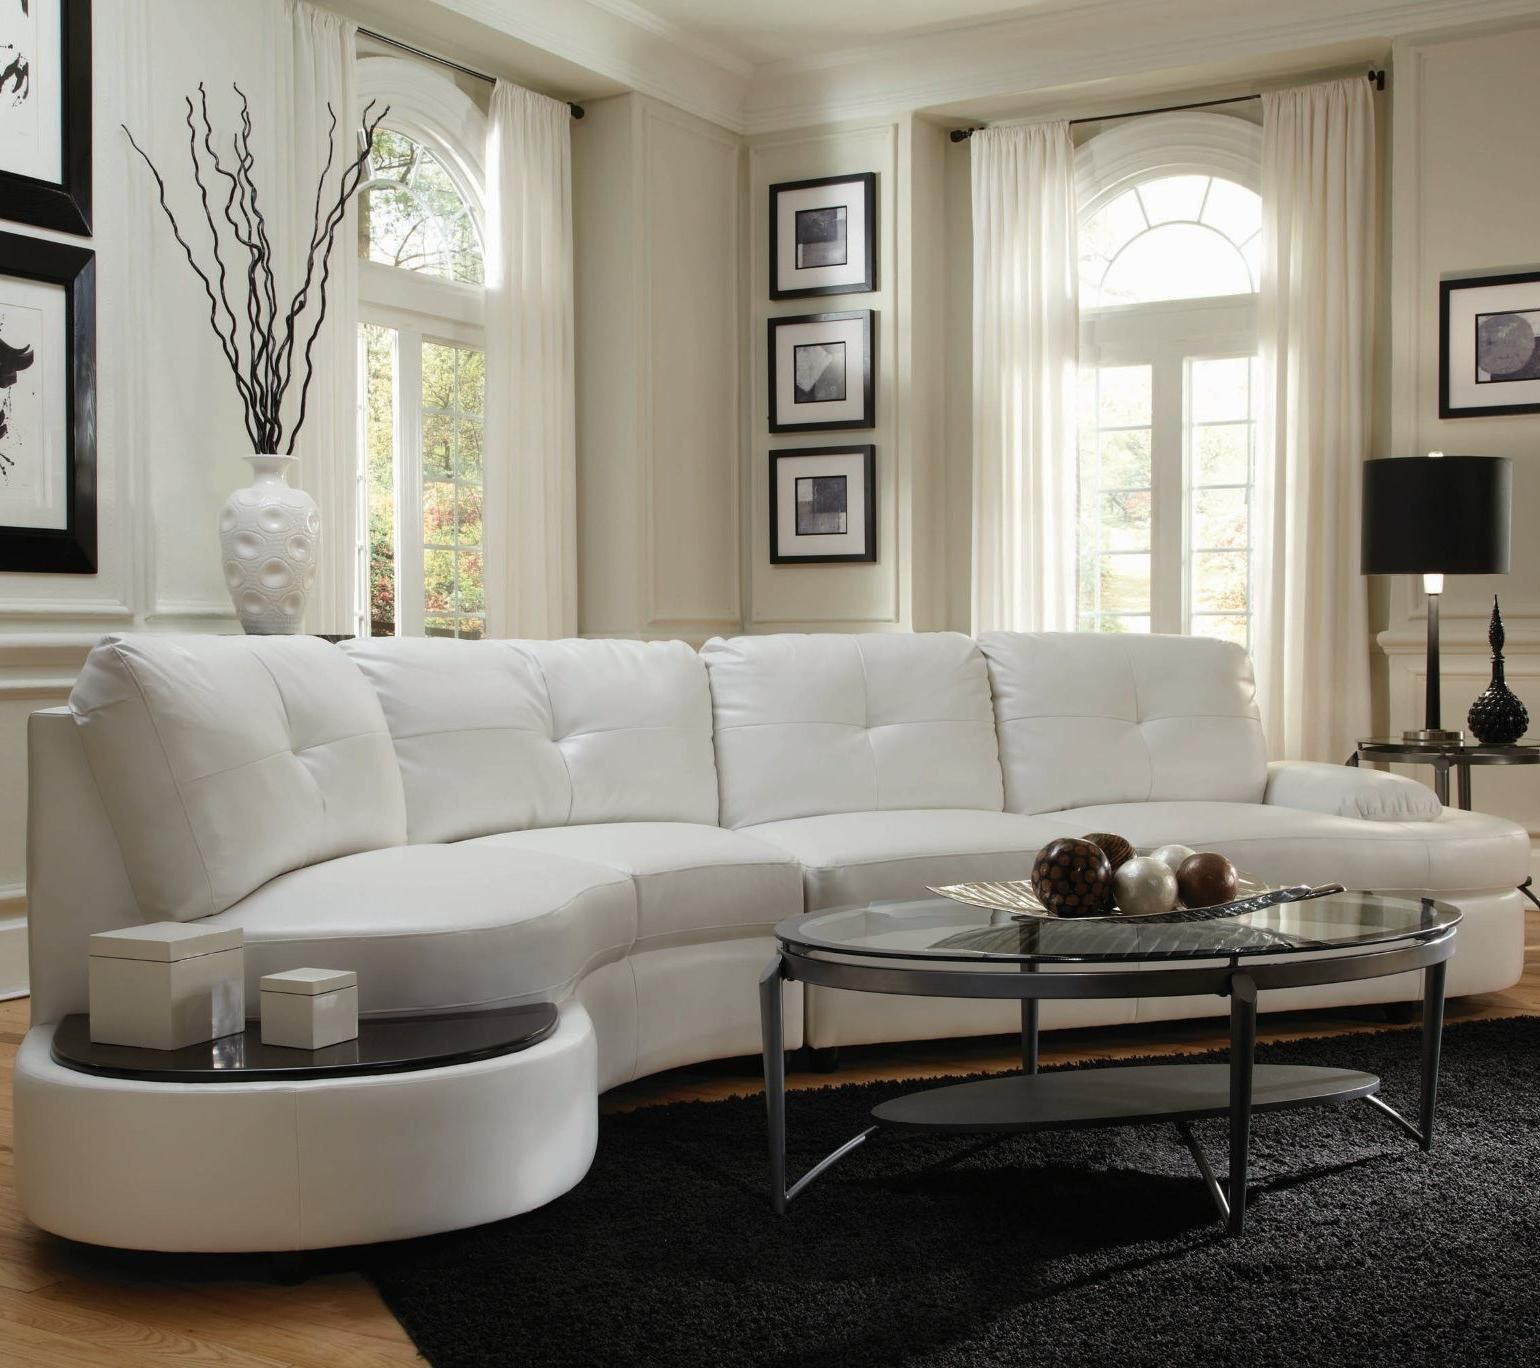 Talia Contemporary Sectional Conversation Sofa with Built